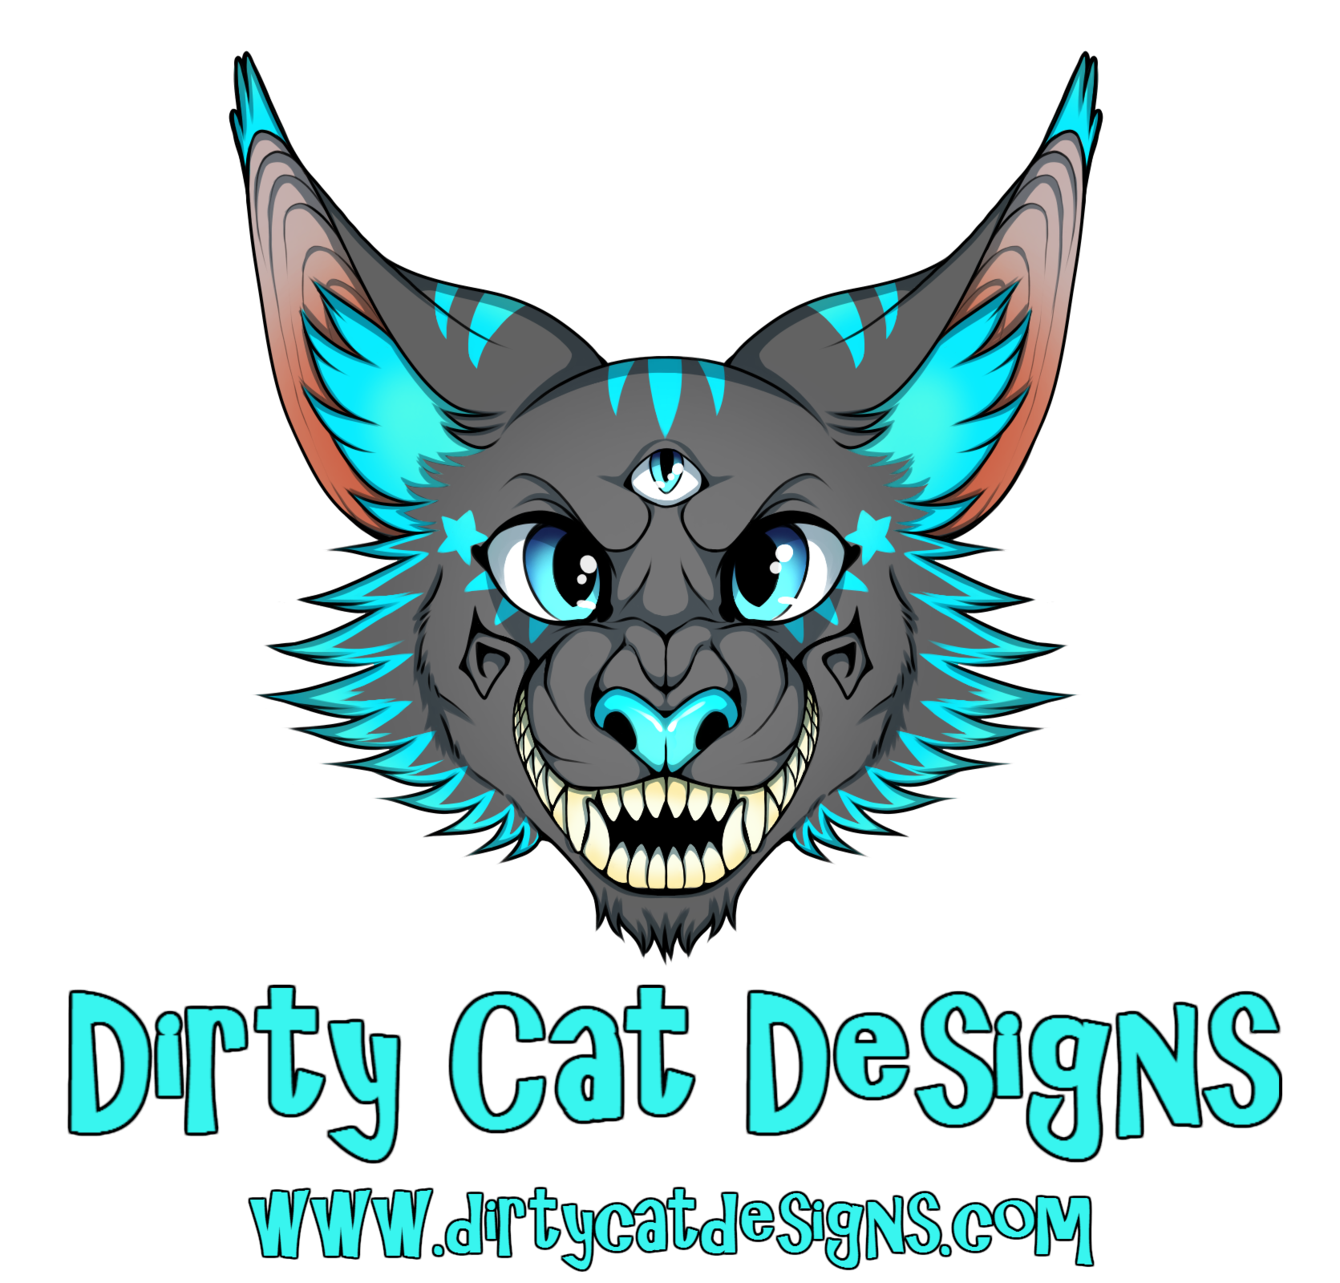 Dirty Cat Designs ].